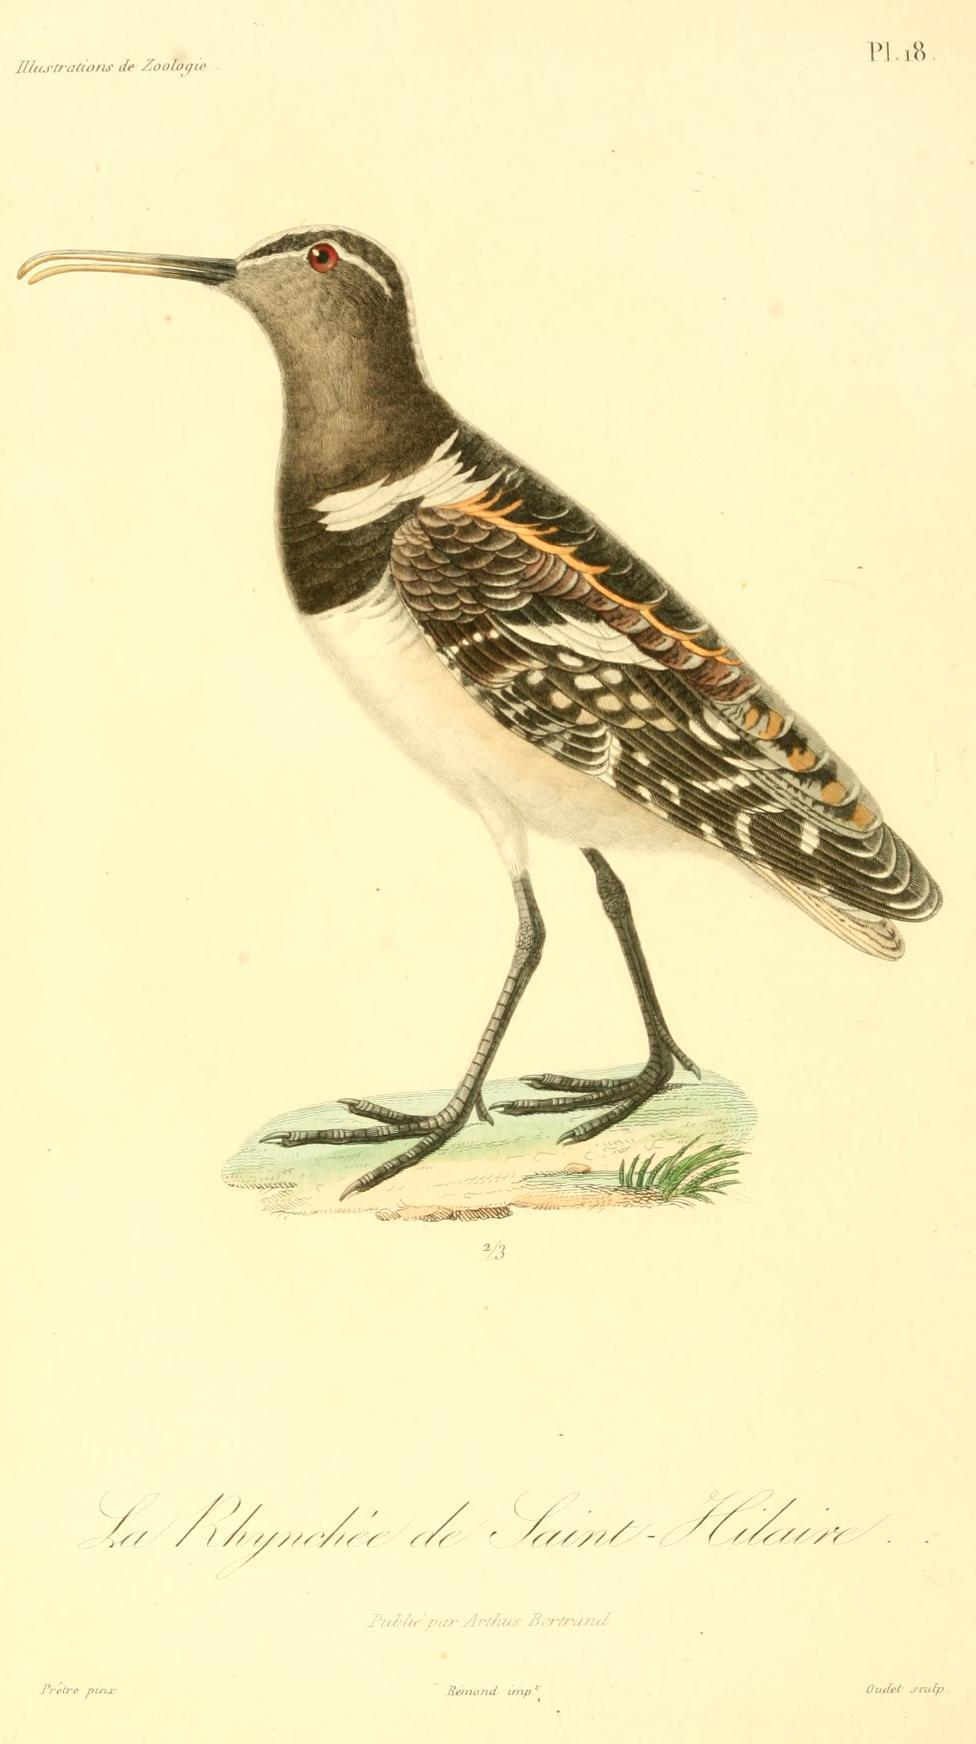 Image of American Painted-snipe